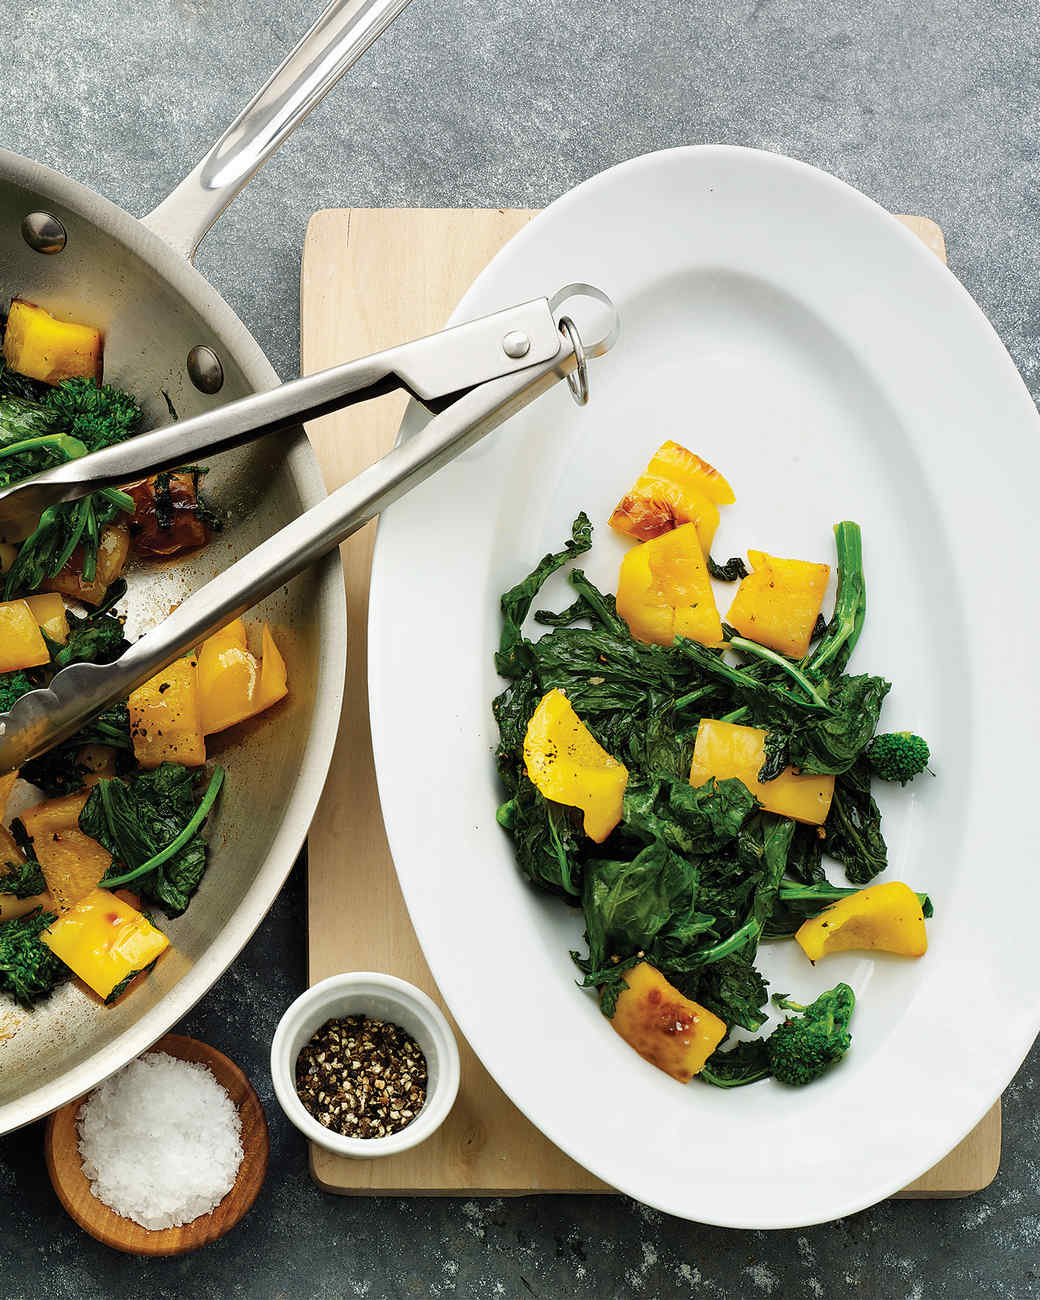 Broccoli Rabe with Yellow Peppers